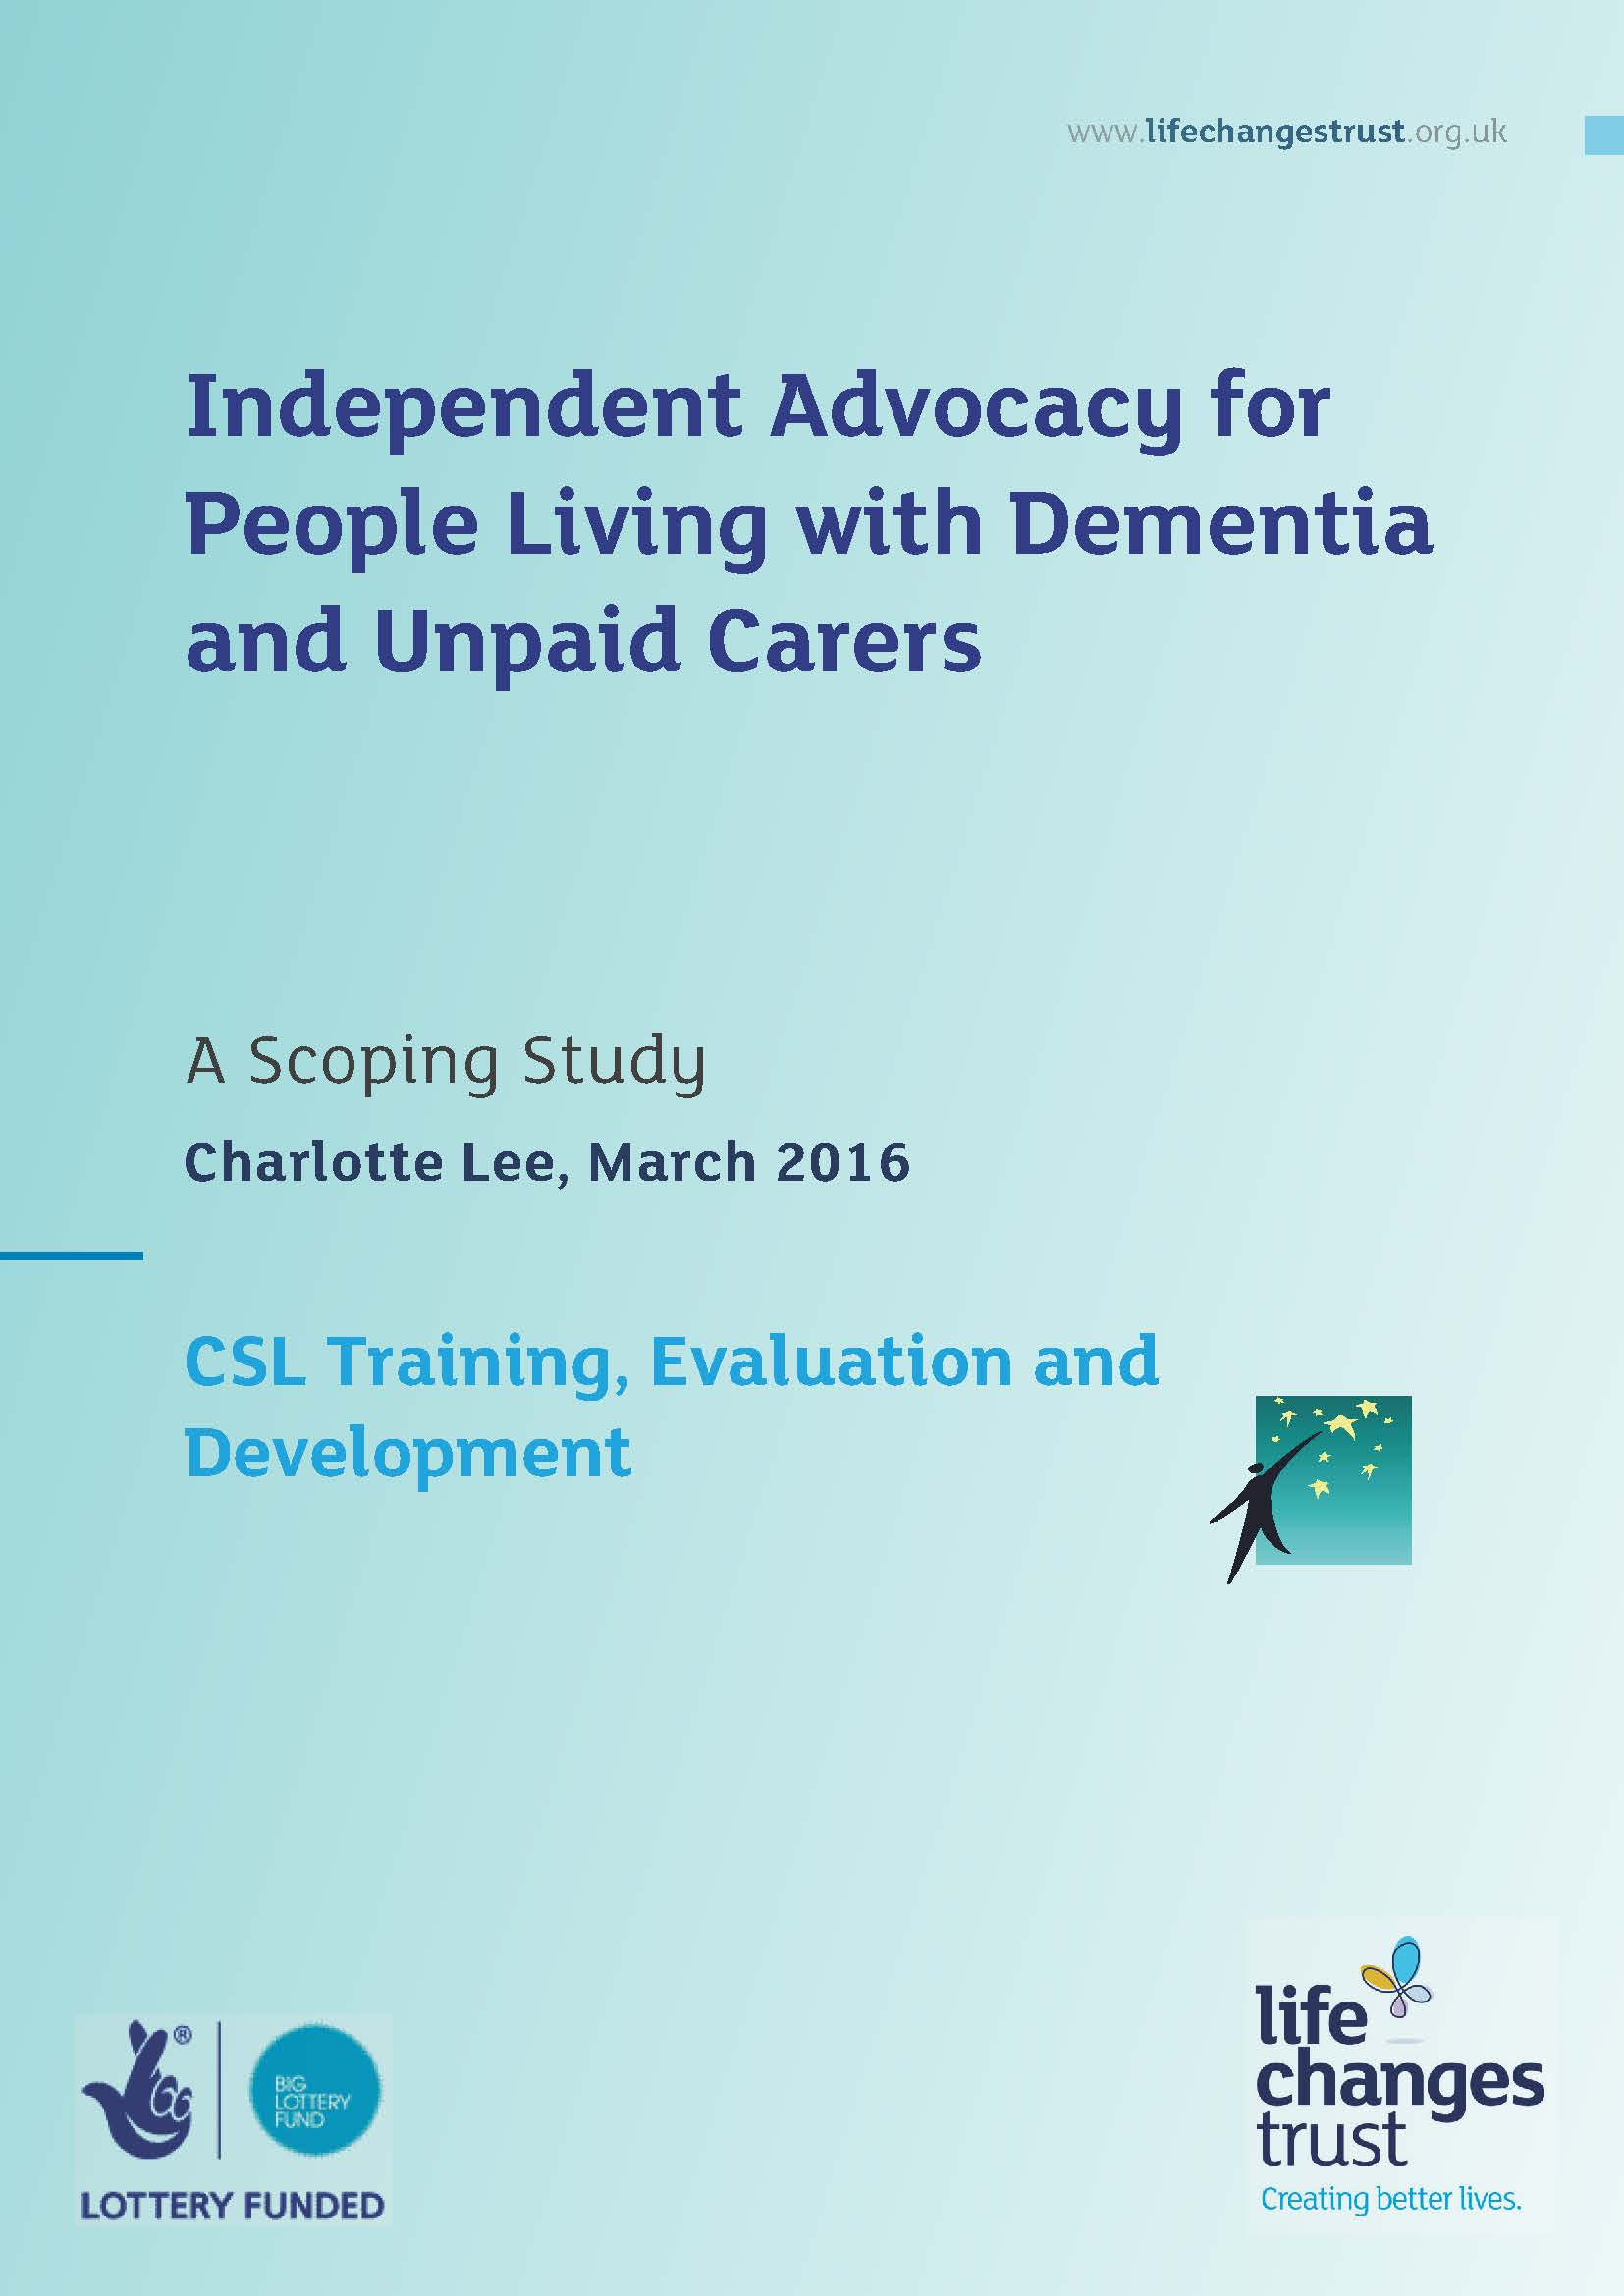 Independent Advocacy and Dementia Report